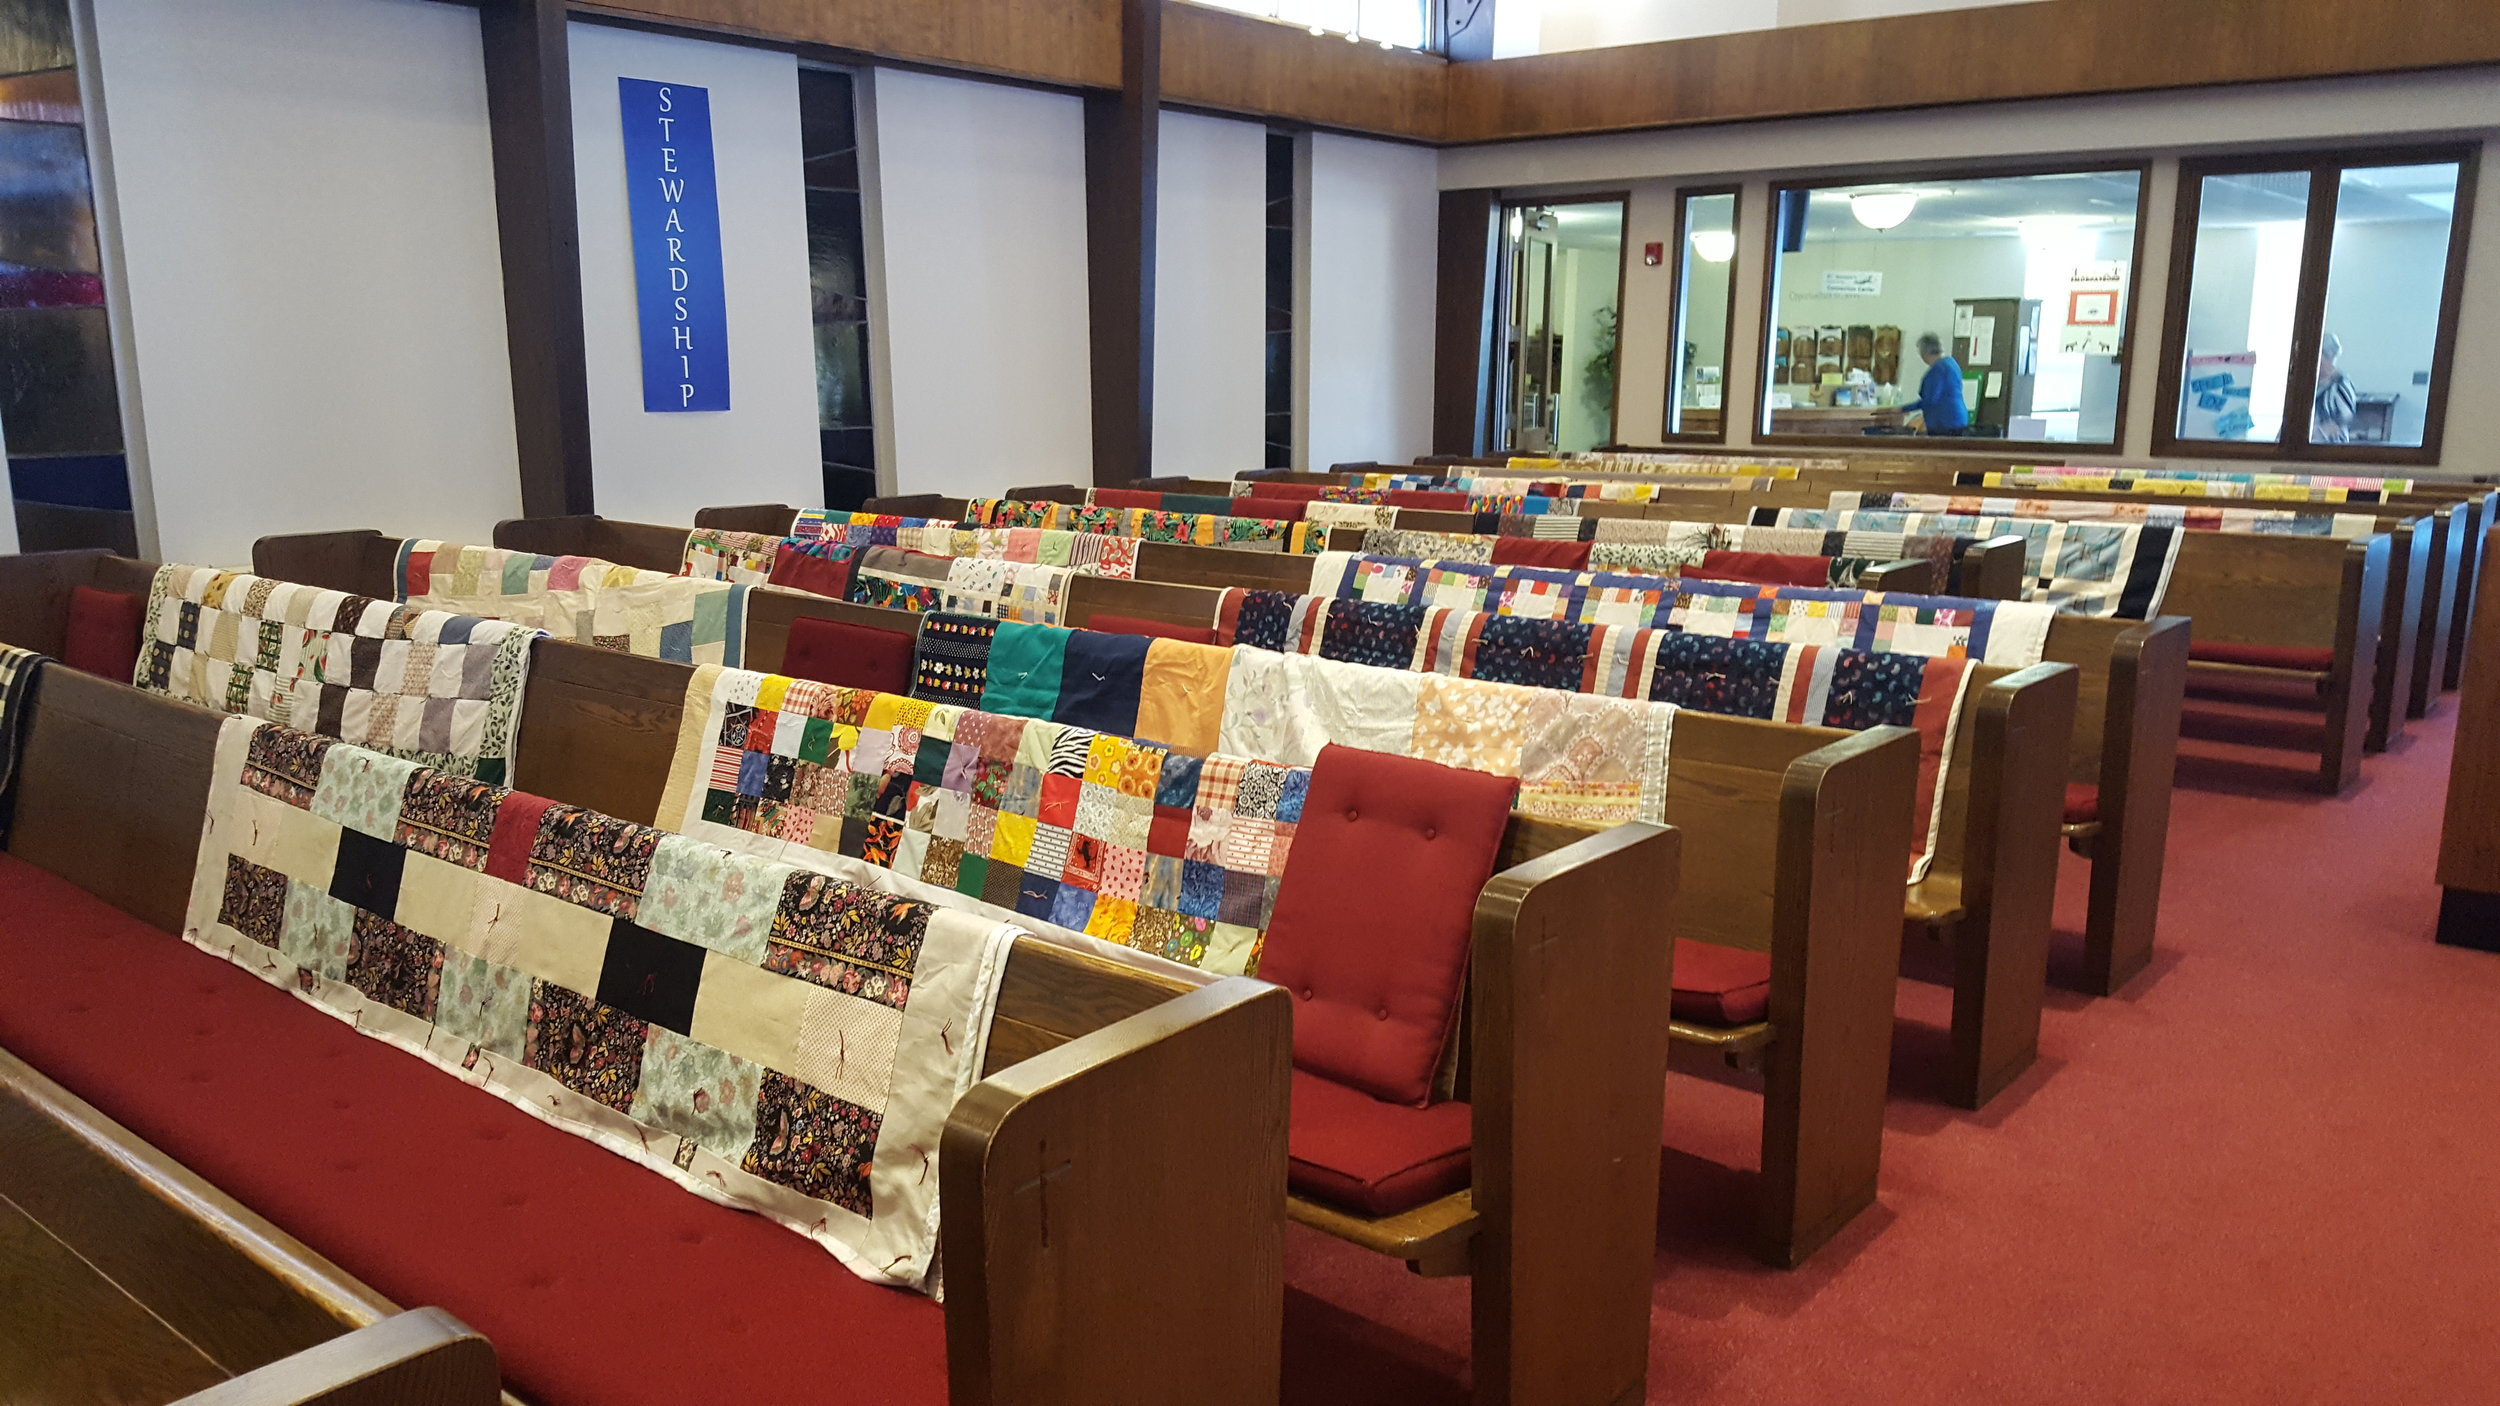 Some of our quilters' beautiful handiwork!